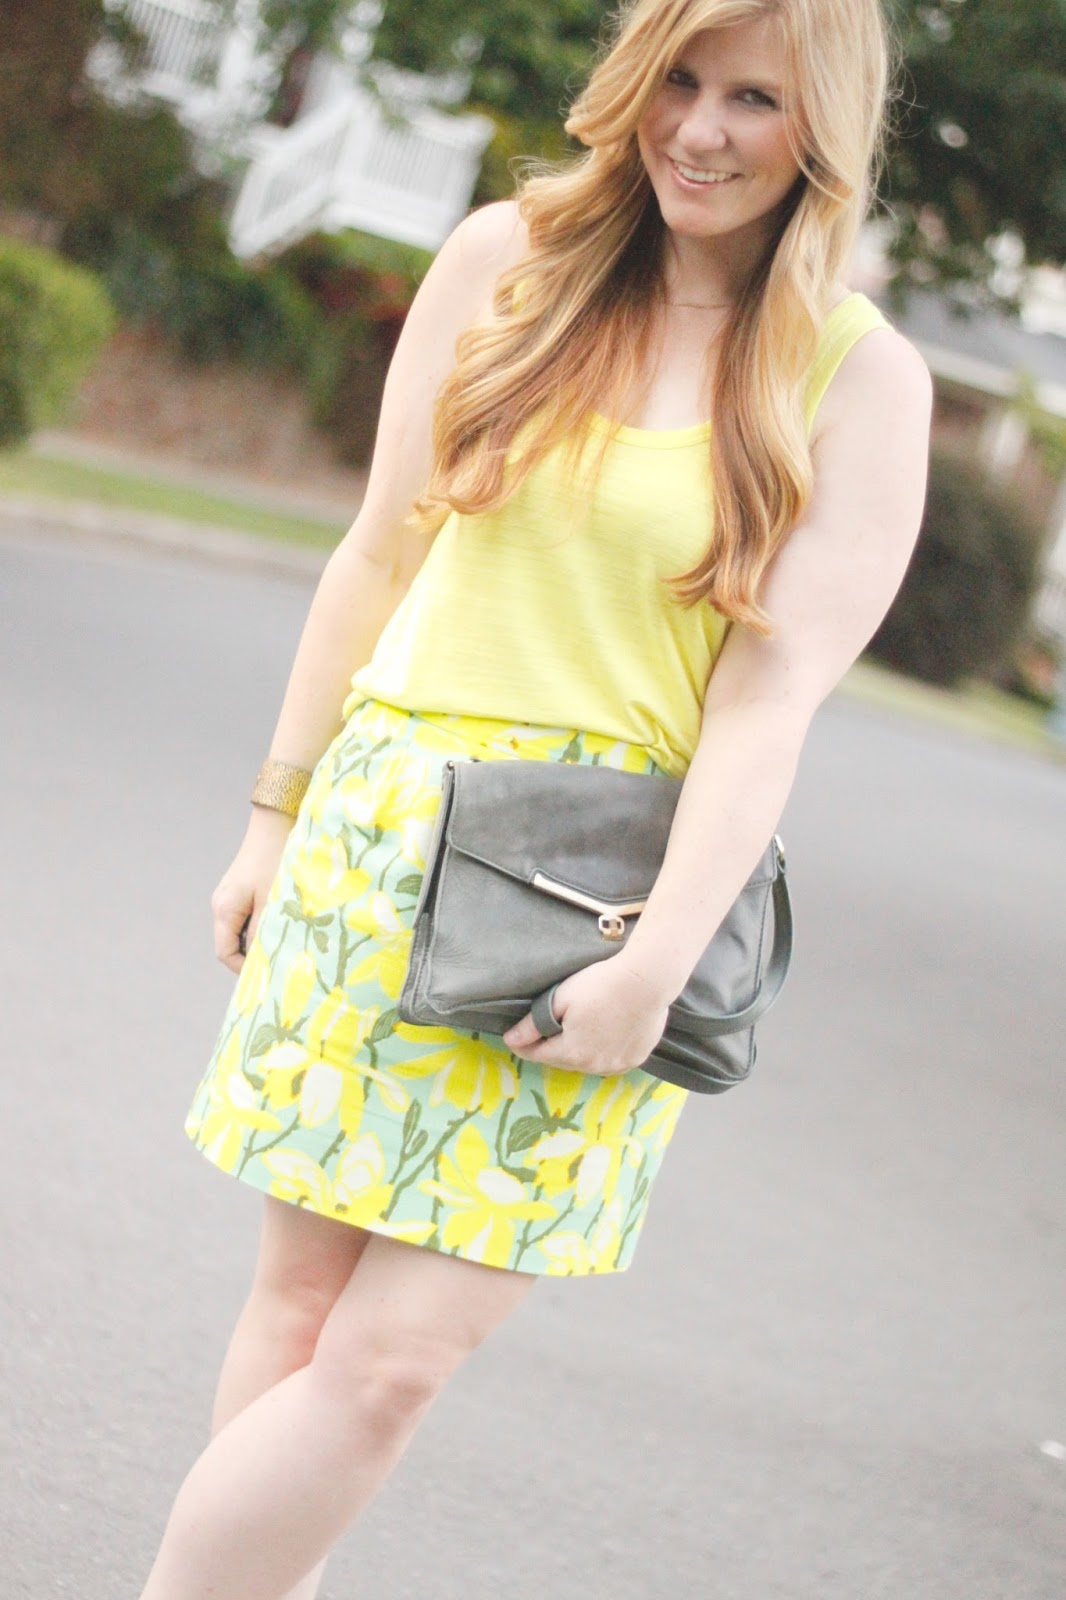 neon j.crew outfit and heels with botkier valentina bag